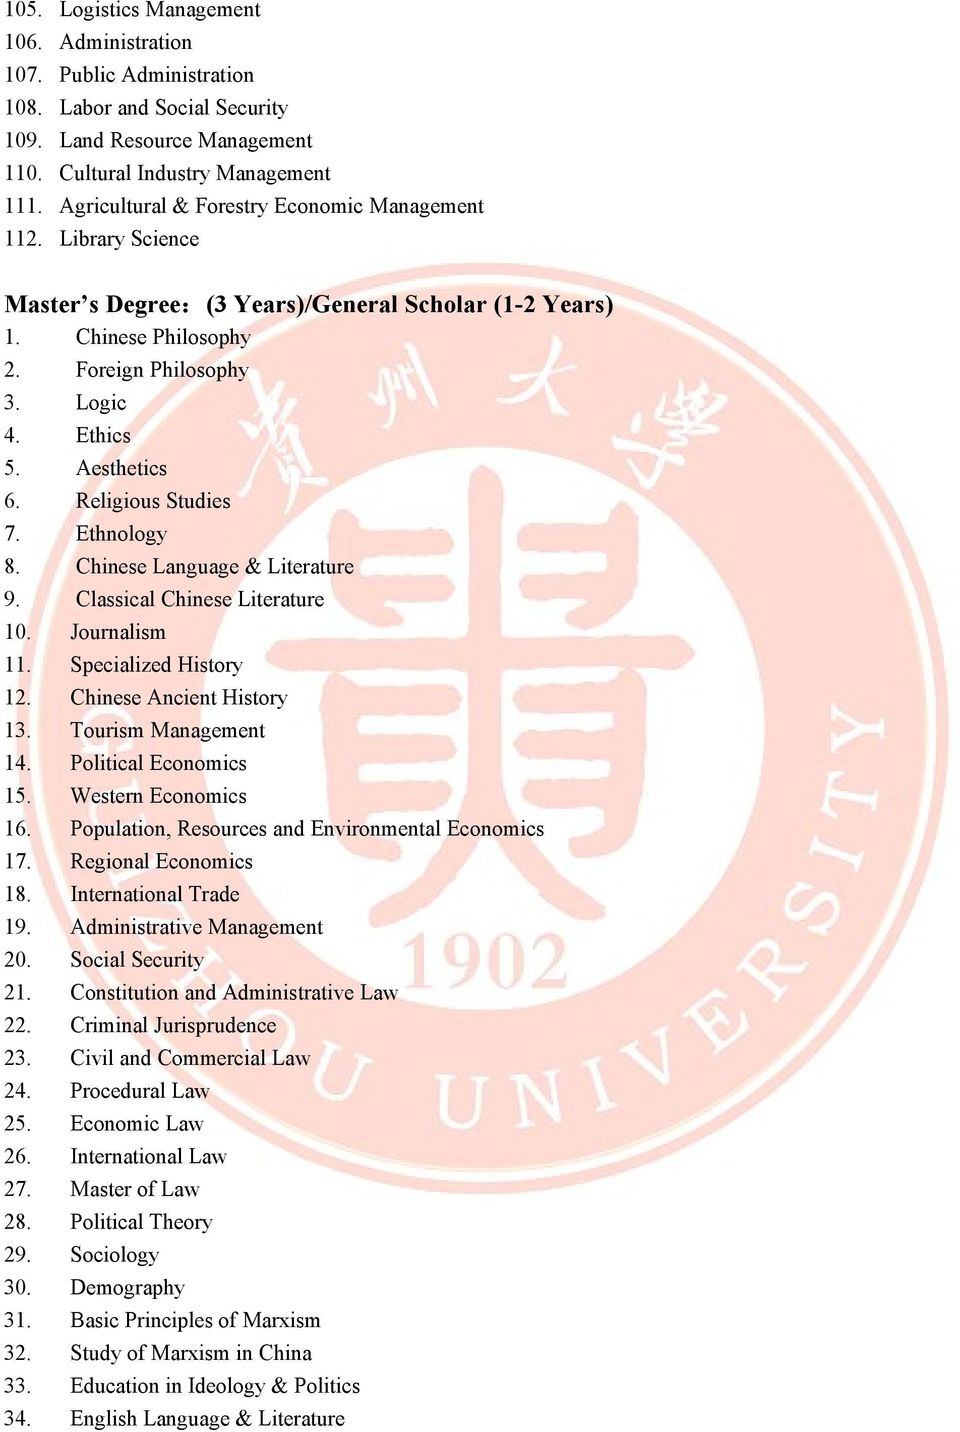 Religious Studies 7. Ethnology 8. Chinese Language & Literature 9. Classical Chinese Literature 10. Journalism 11. Specialized History 12. Chinese Ancient History 13. Tourism Management 14.